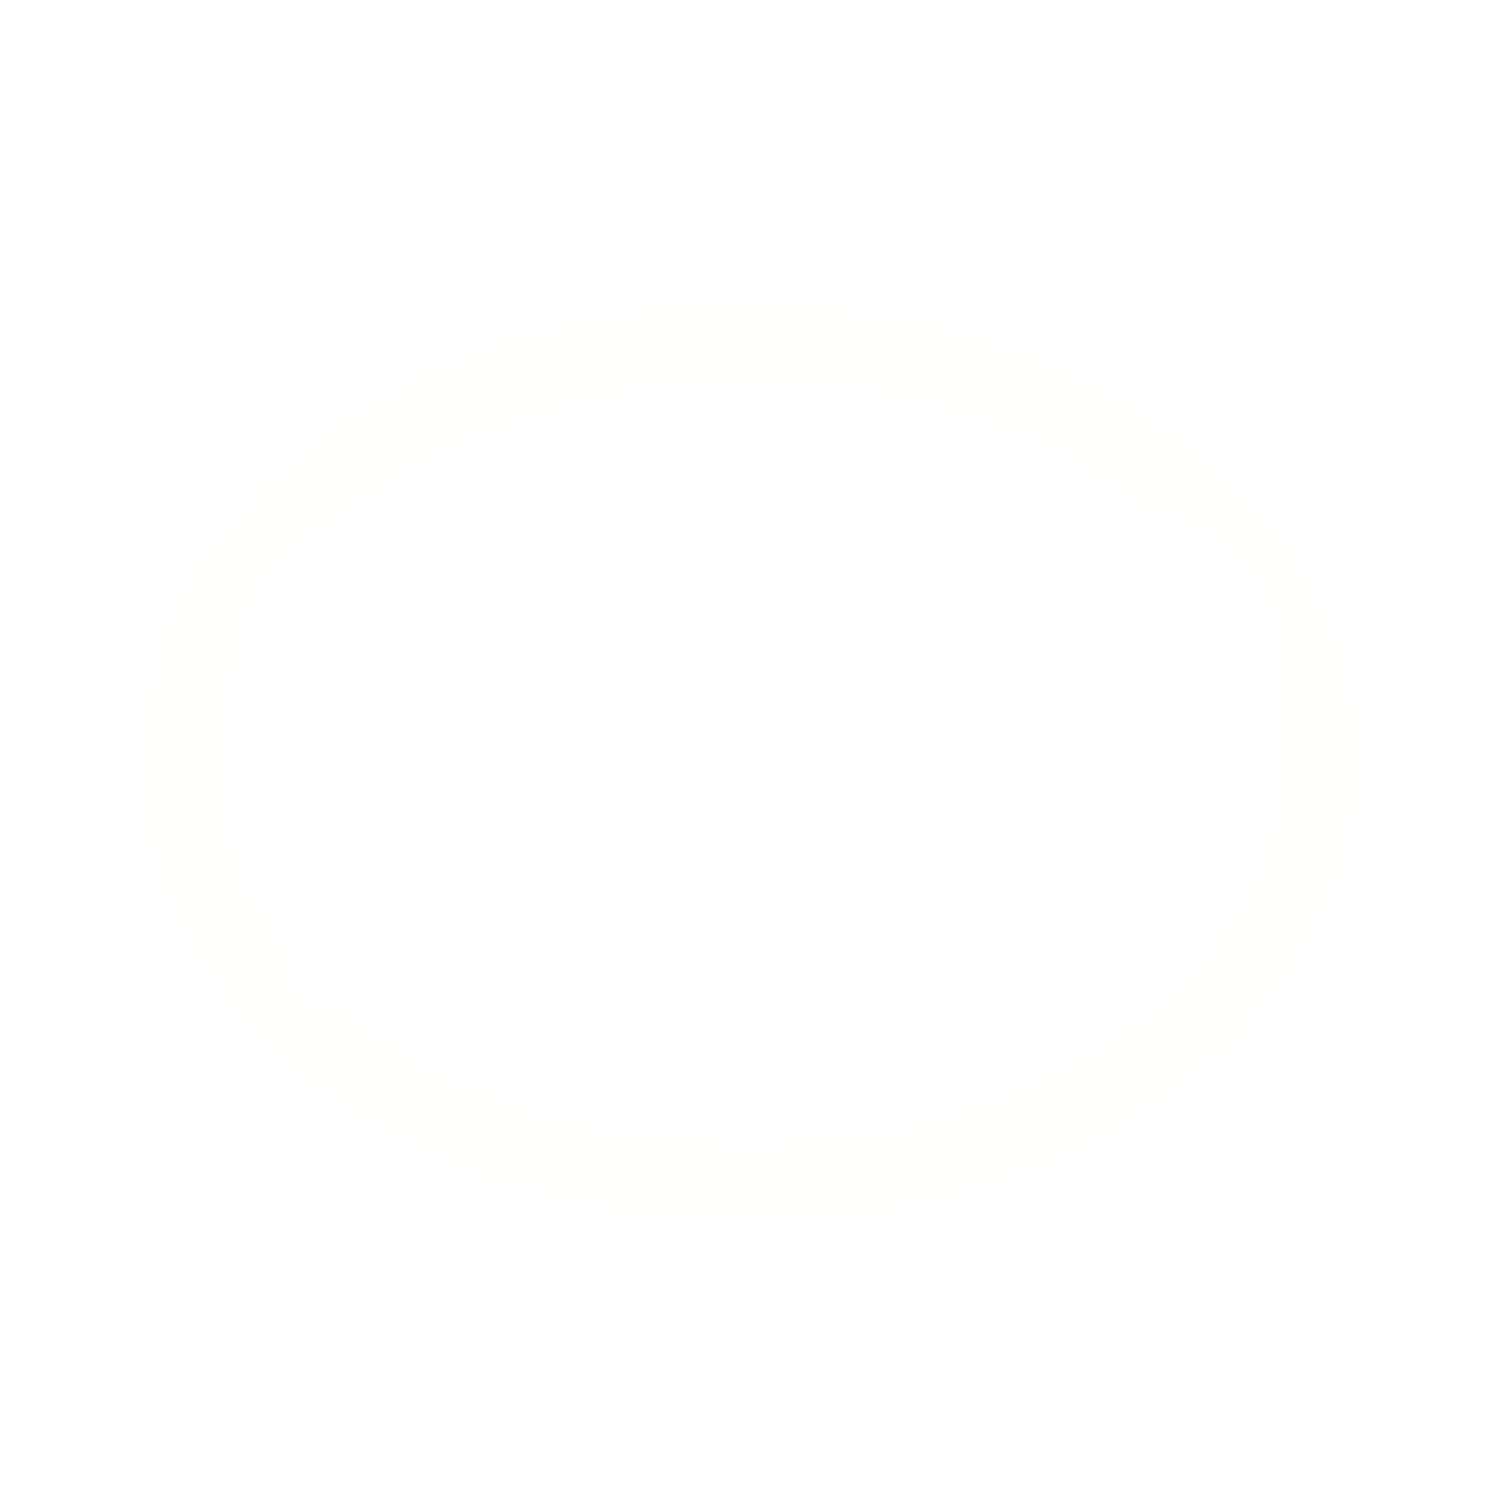 Glacier Film Productions